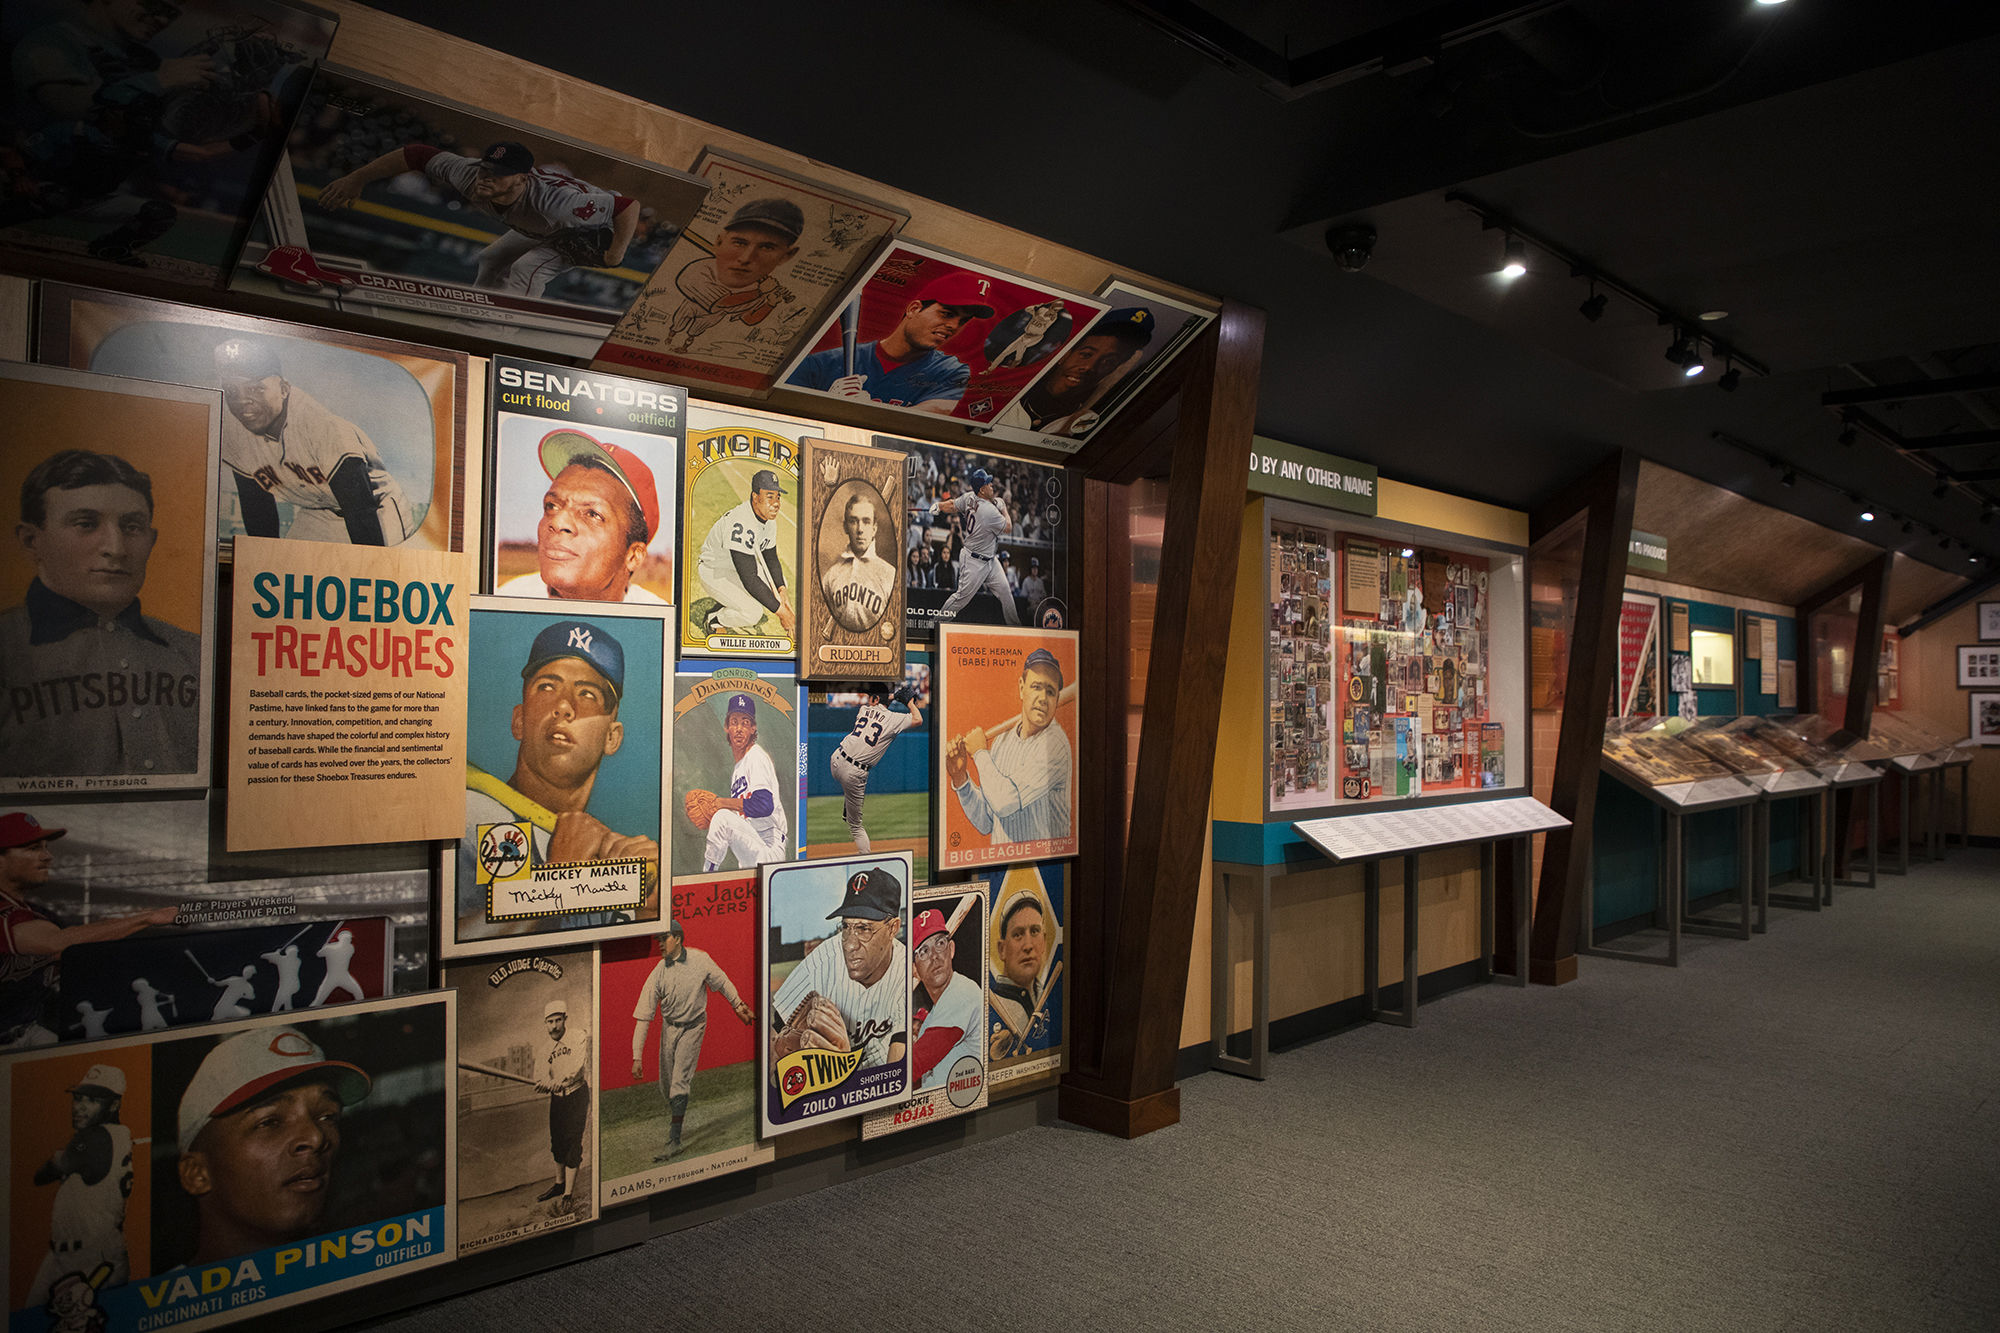 Museums Shoebox Treasures Exhibit Tells The Story Of